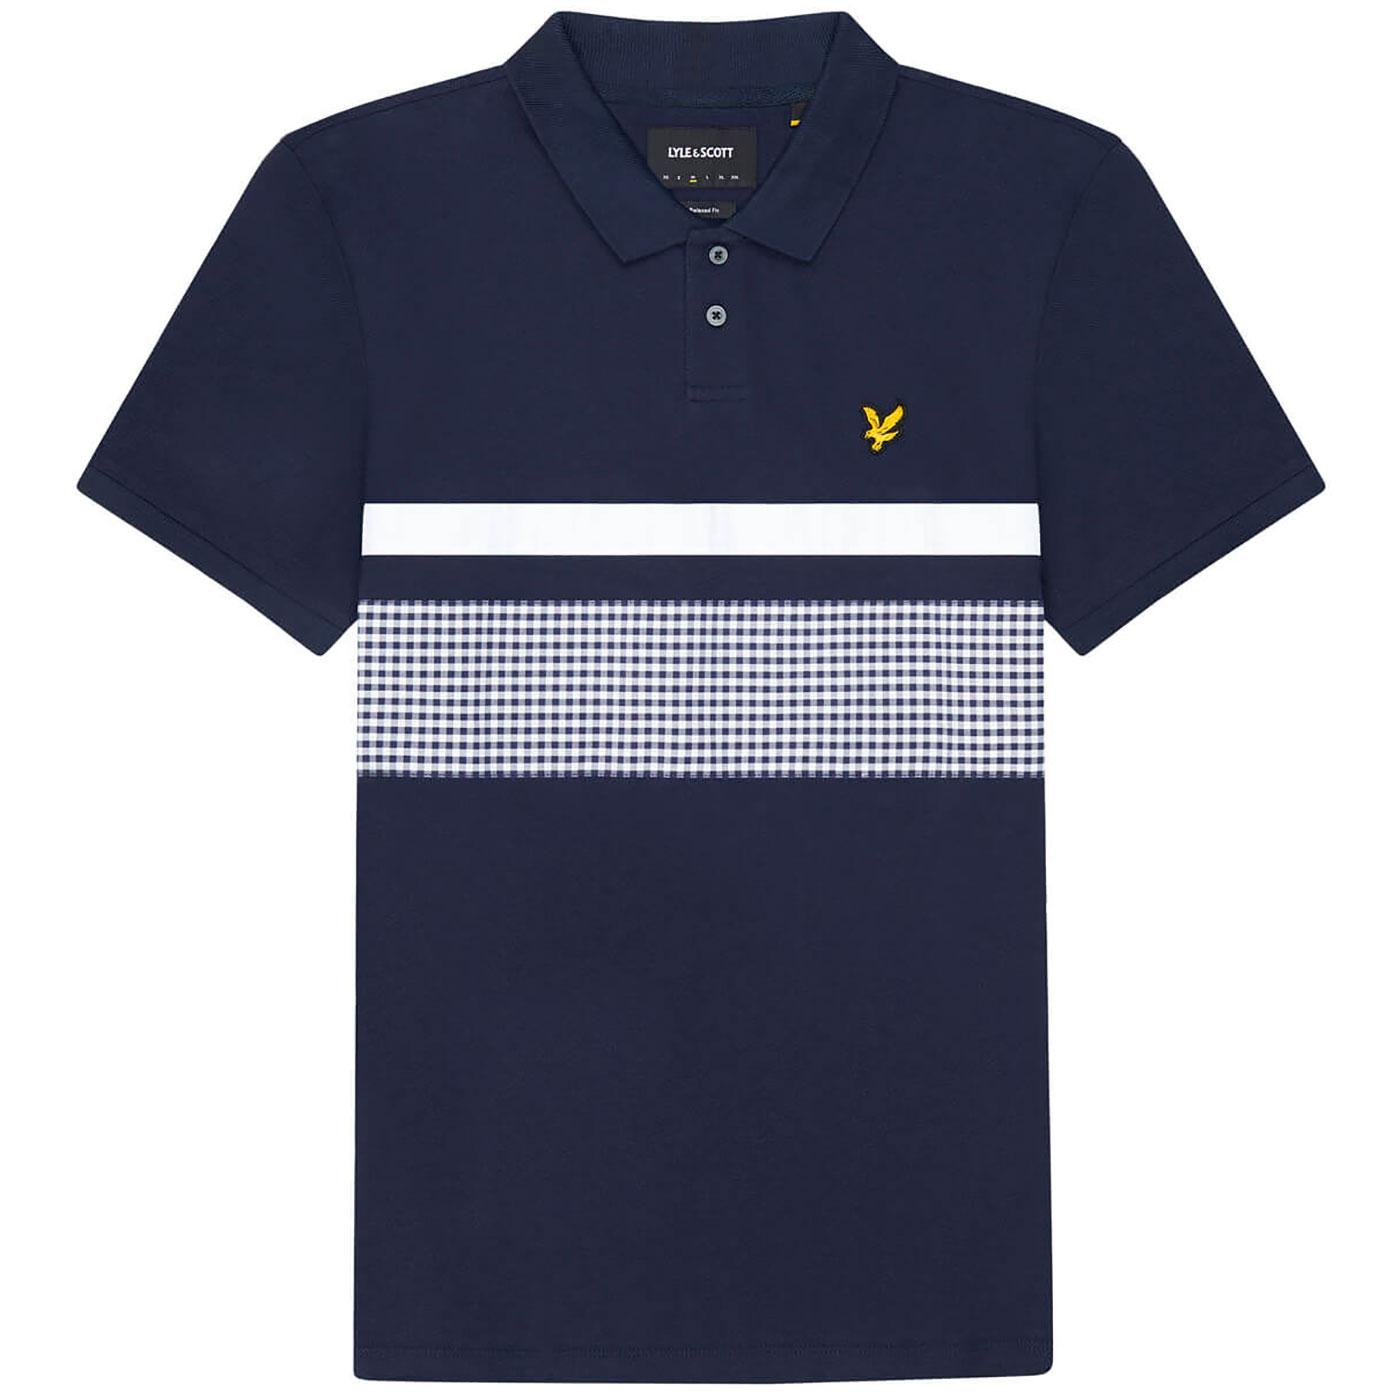 LYLE & SCOTT Mod Gingham Yoke Stripe Polo Top (DN)